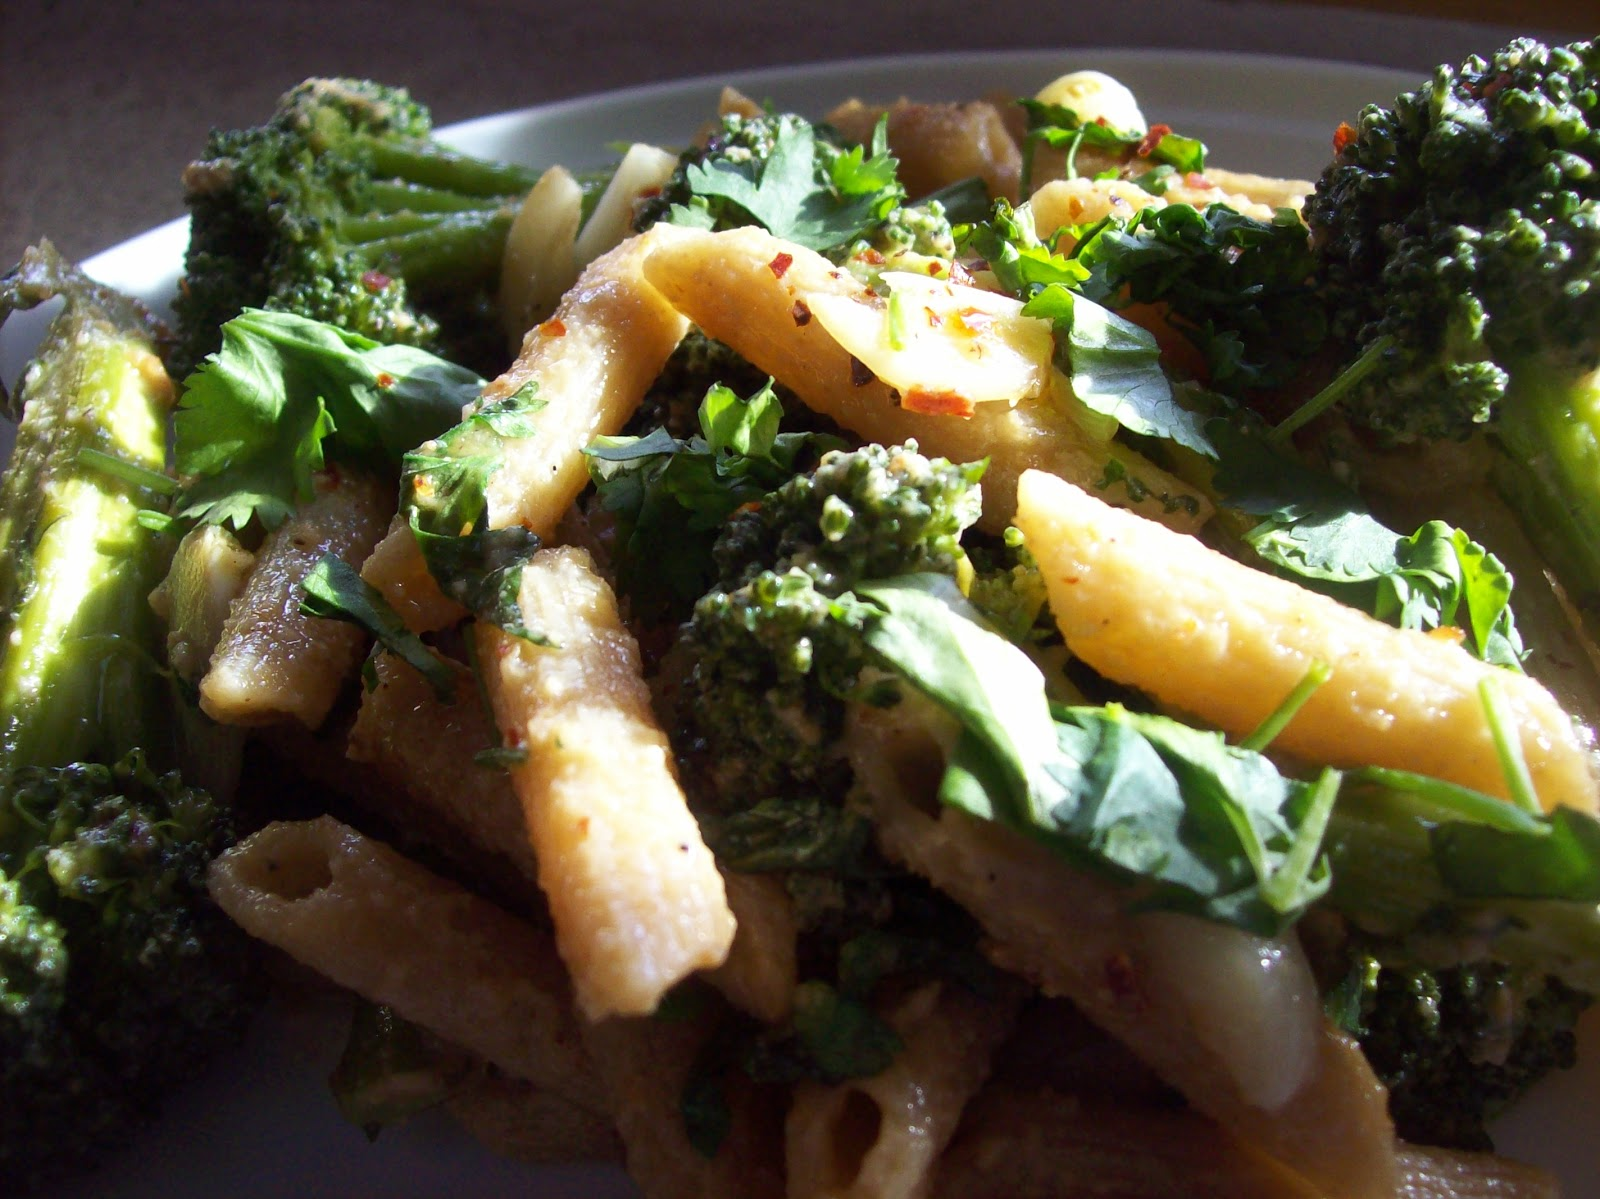 pasta with broccoli spicy cashew pesto 1 batch broccoli with